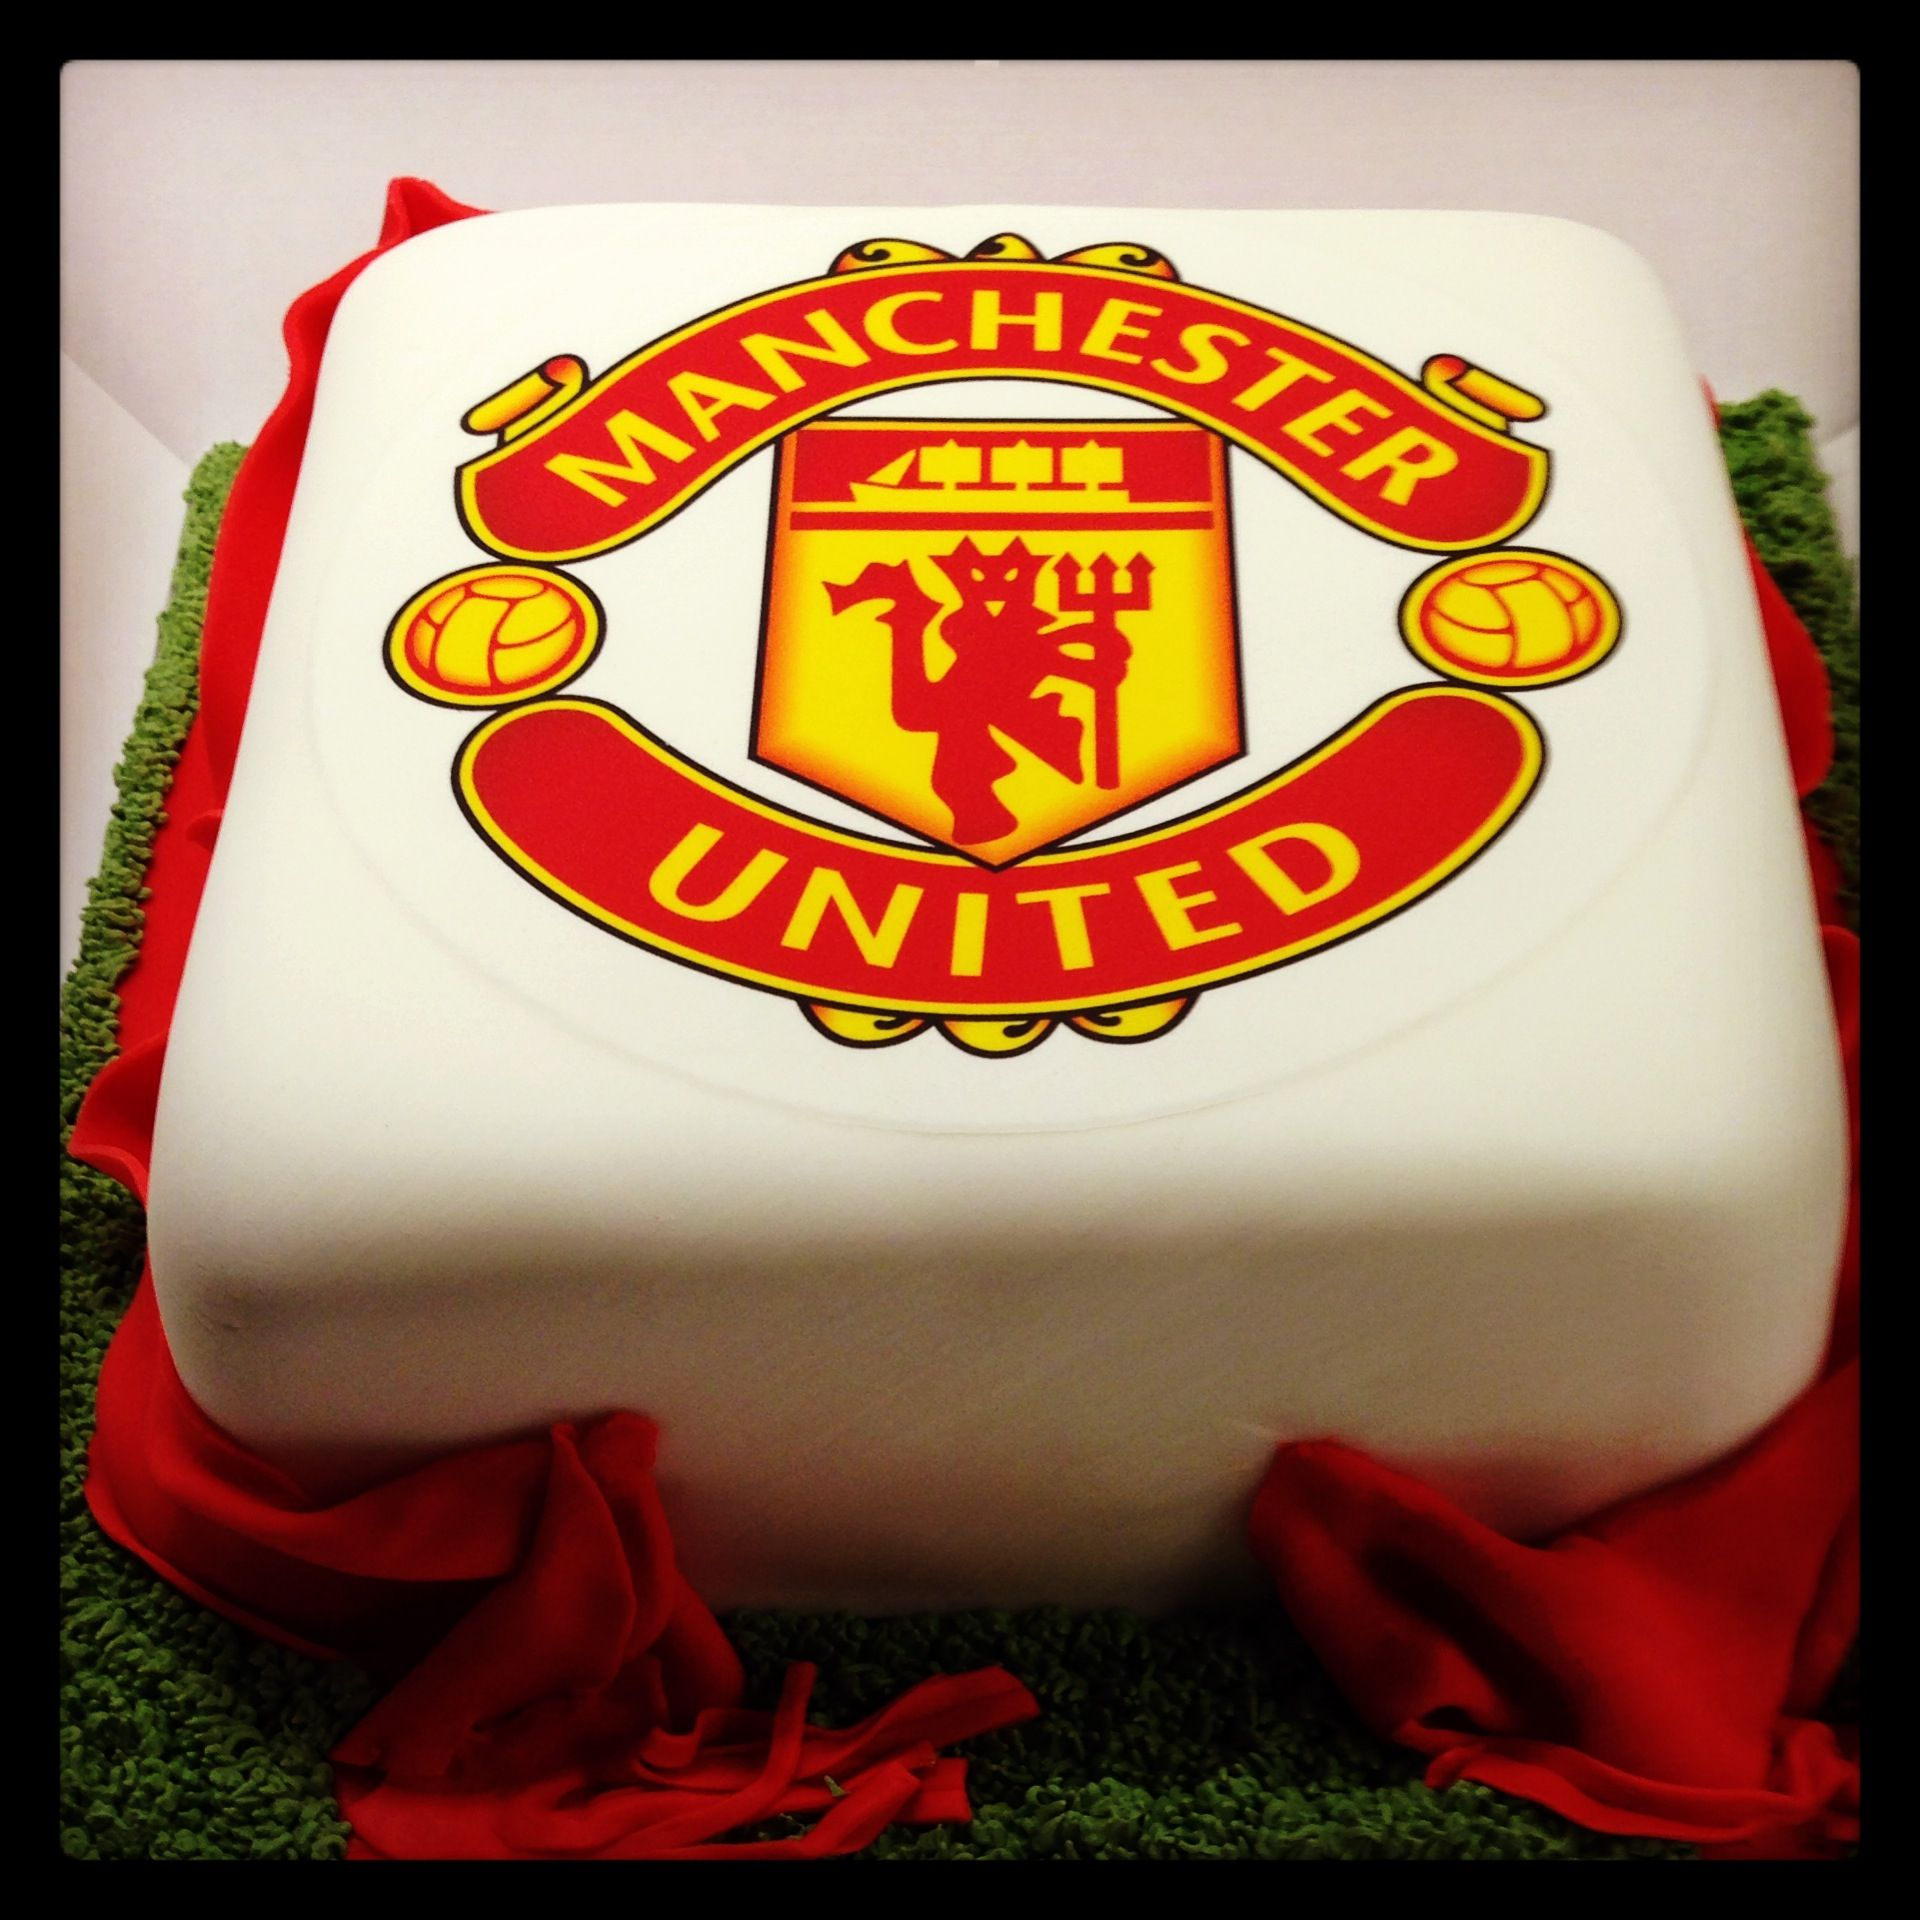 manchester united cake 100 edible vanilla sponge vanilla buttercream and strawber manchester united cake manchester united birthday cake 6th birthday cakes manchester united cake 100 edible